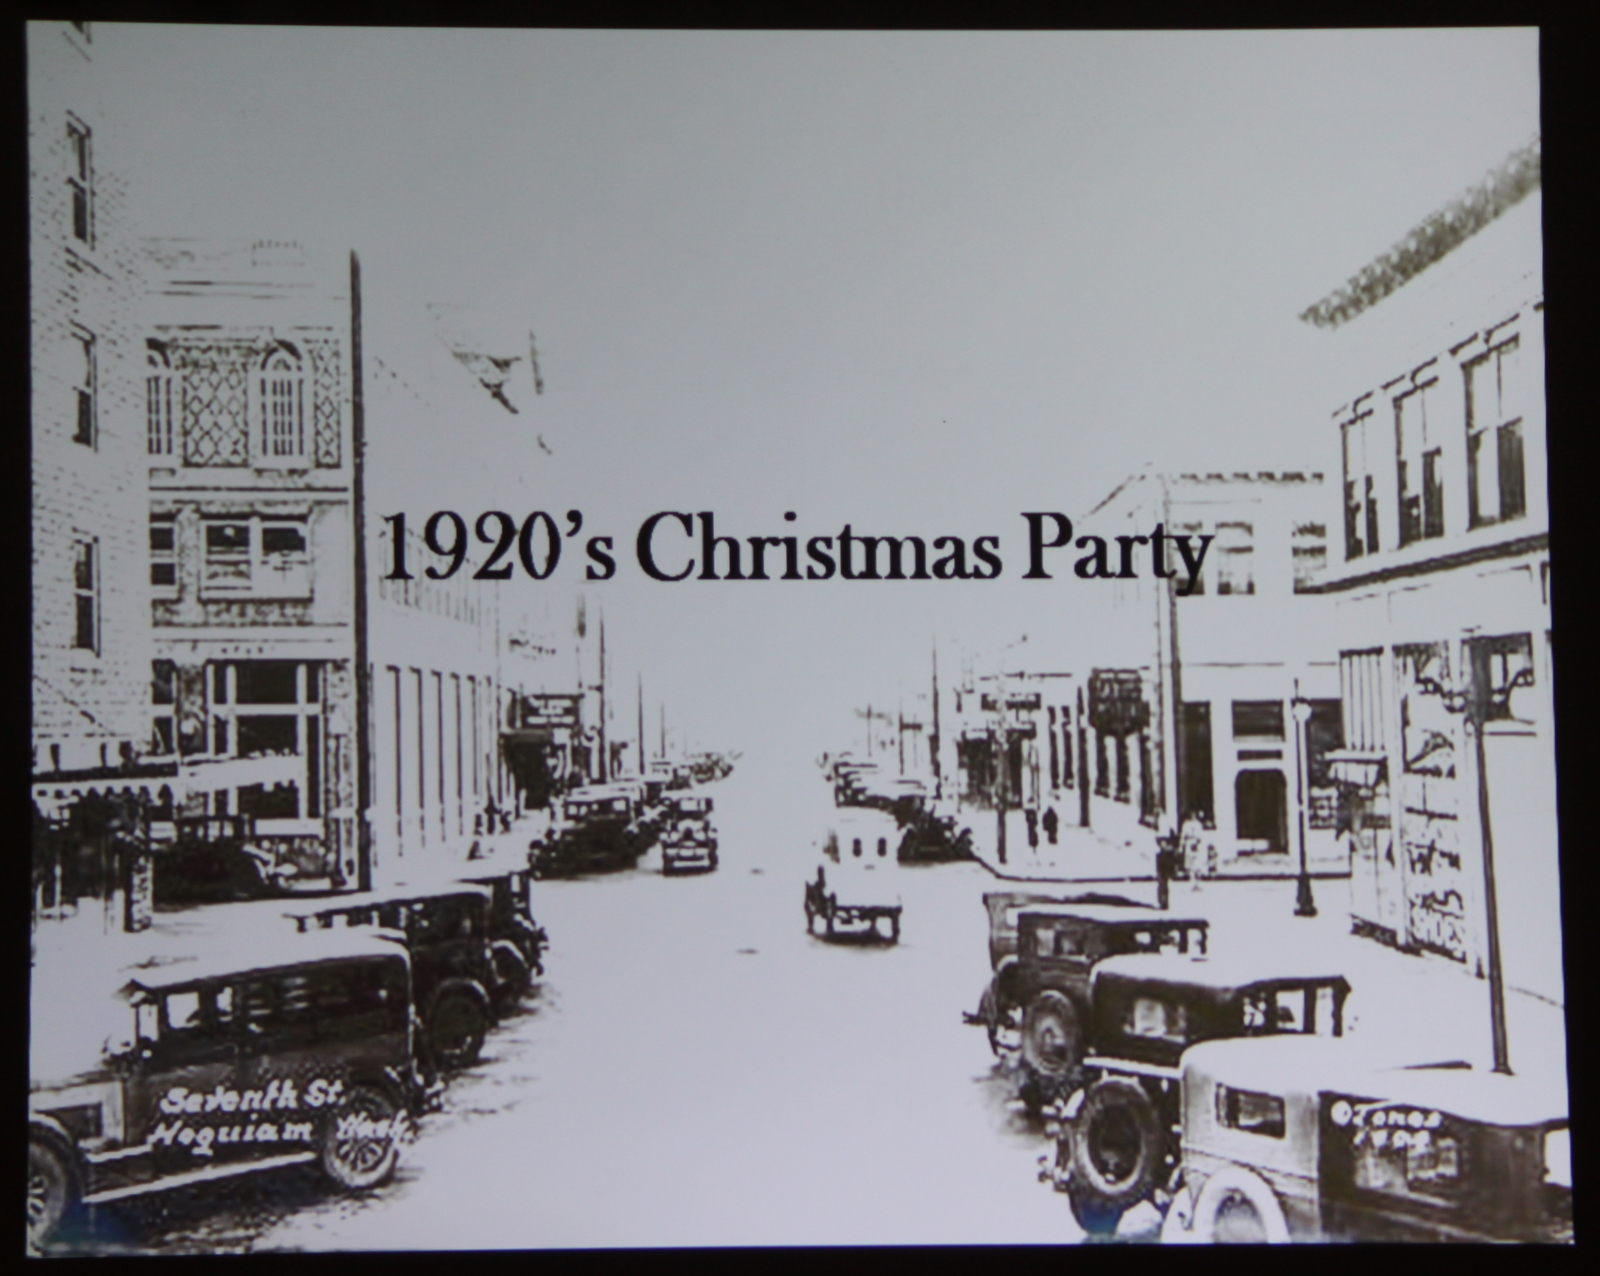 offshore cpa: 1920s Christmas party